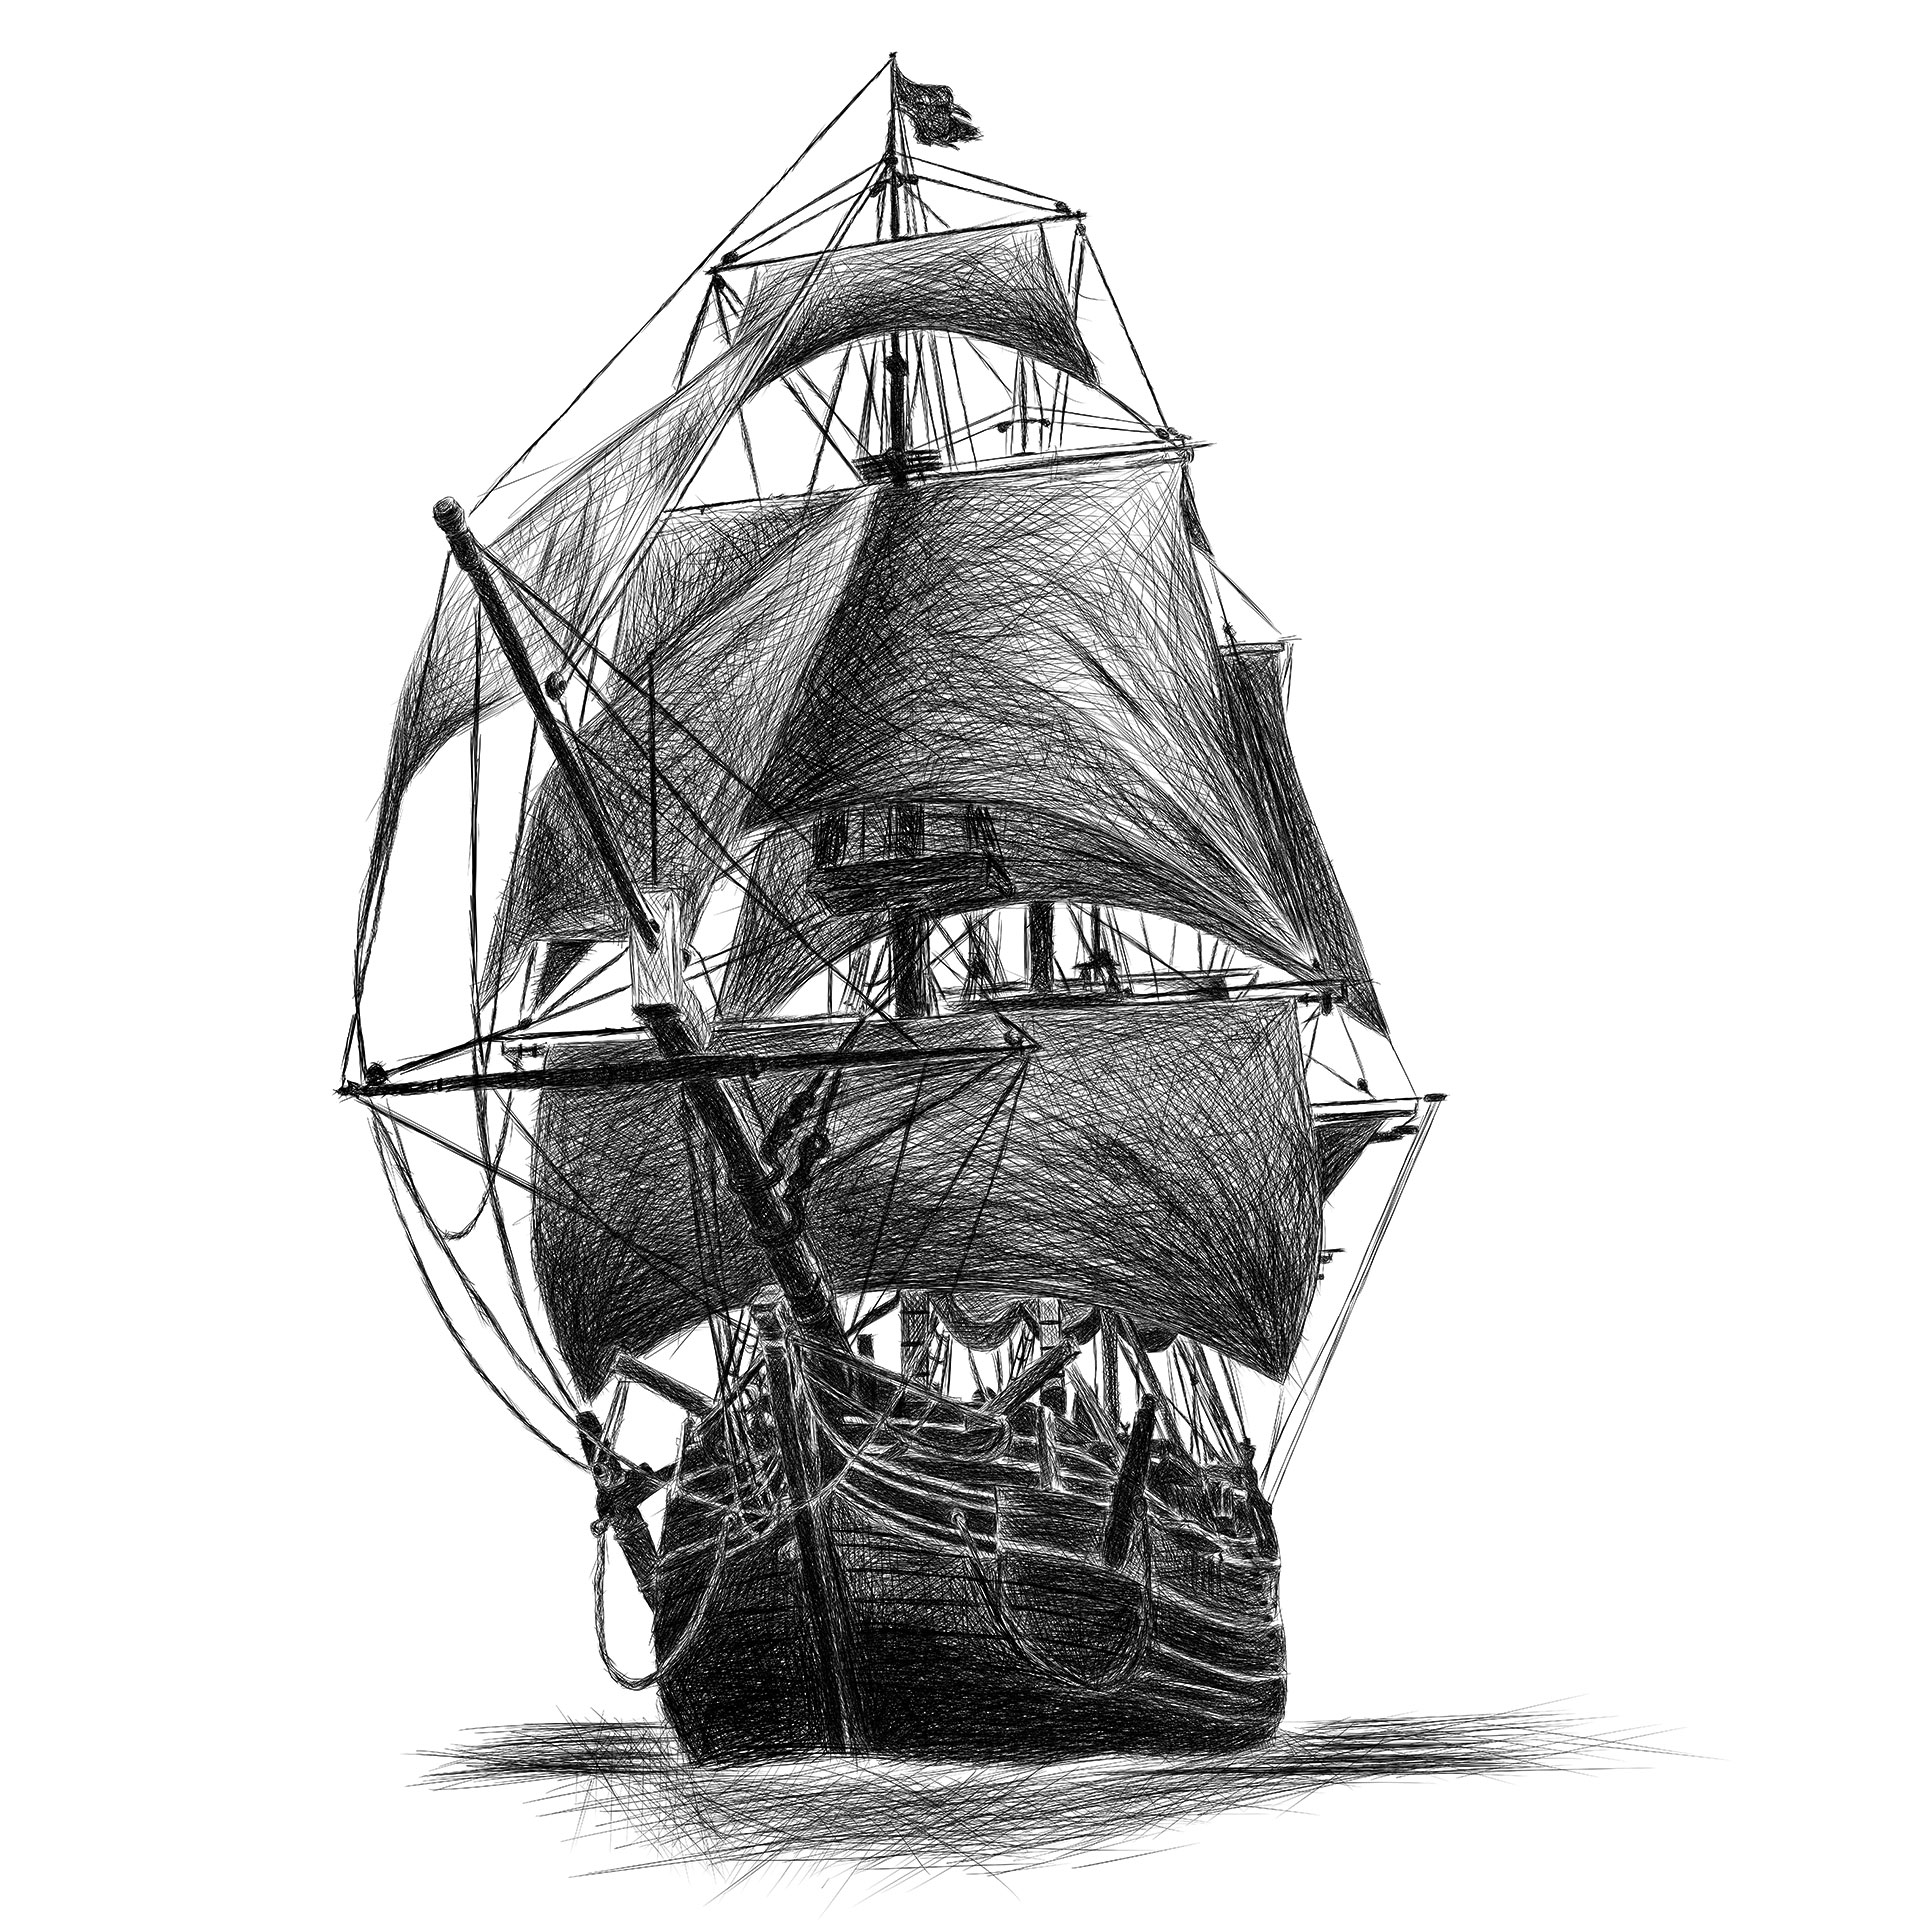 pirate boat drawing ship pencil sketch at paintingvalleycom explore pirate drawing boat